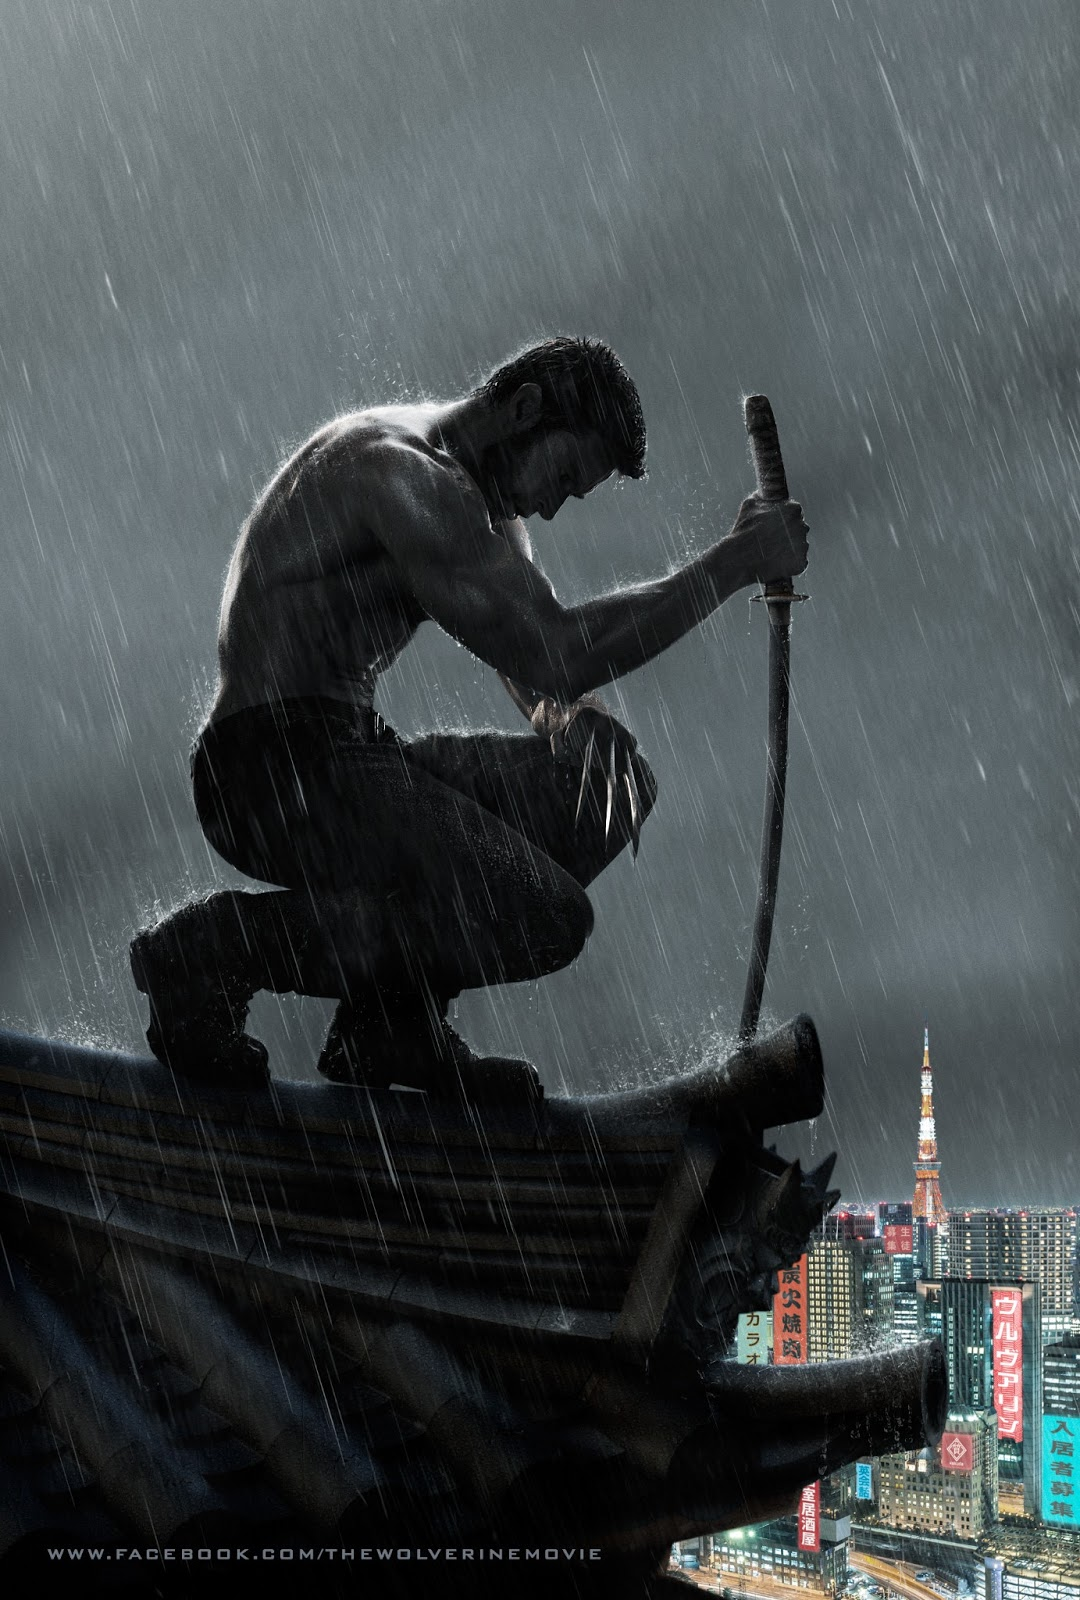 movie 2013 hd movie poster the wolverine movie 2013 hd movie wallpaper 1080x1600